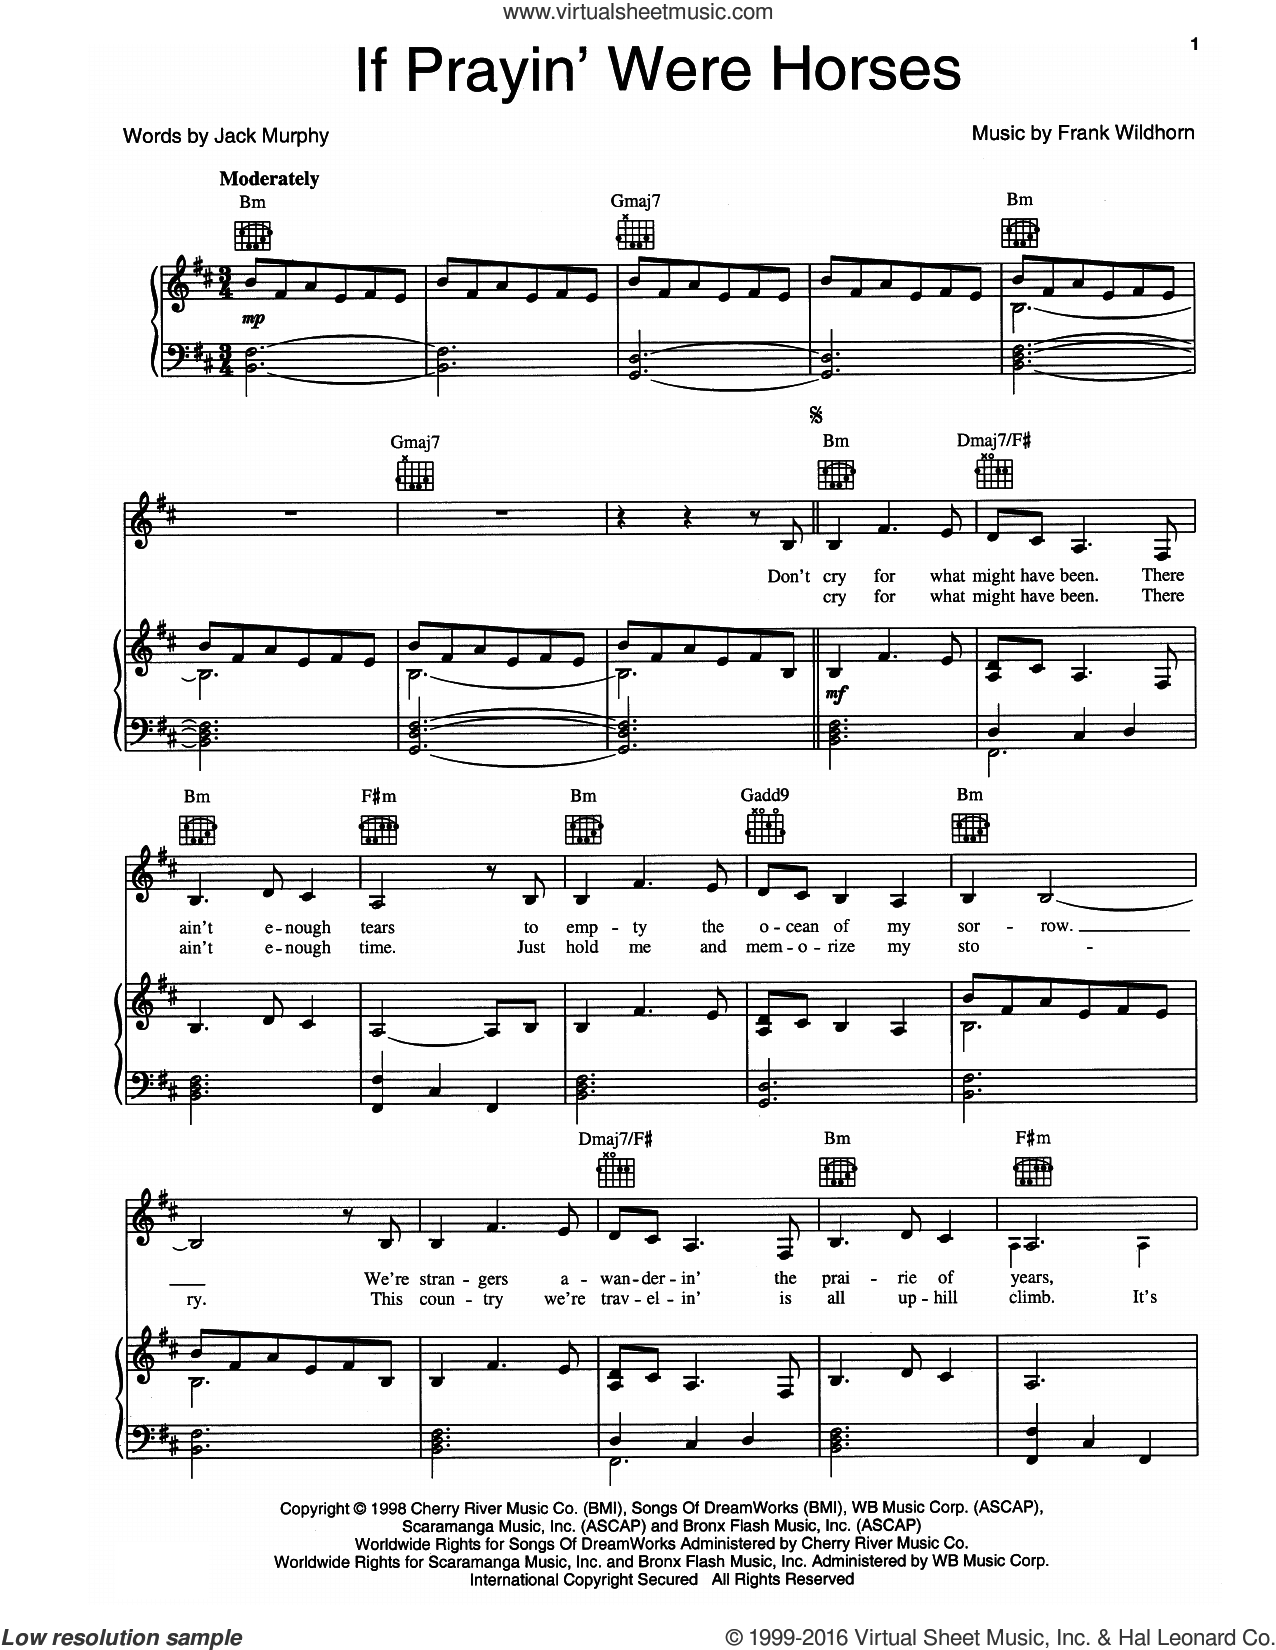 If Prayin' Were Horses sheet music for voice, piano or guitar by Jack Murphy